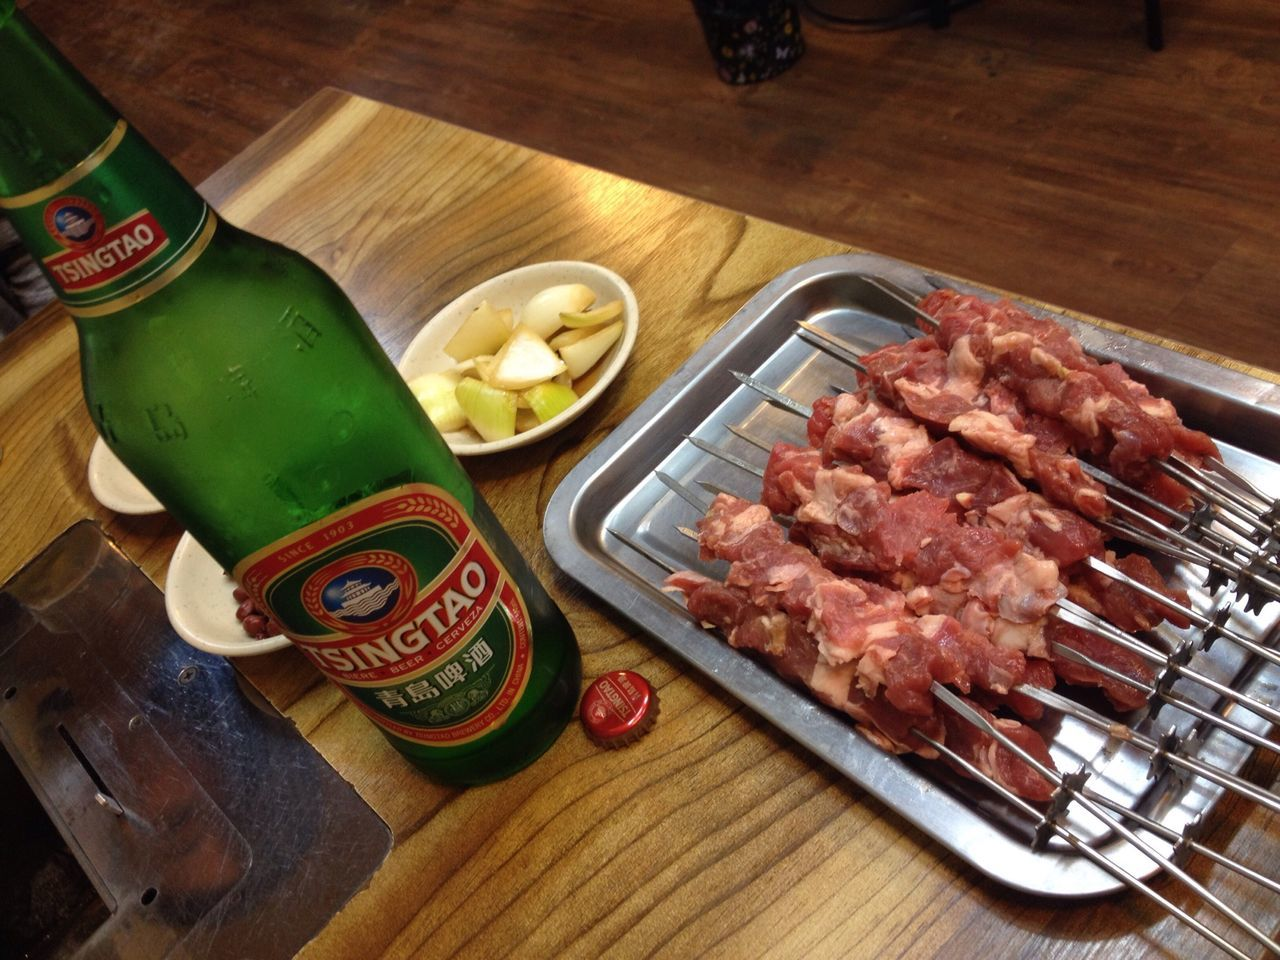 Lamb Skewers Beer Tsingtao 양꼬치! 아오 맛나ㅠ???????